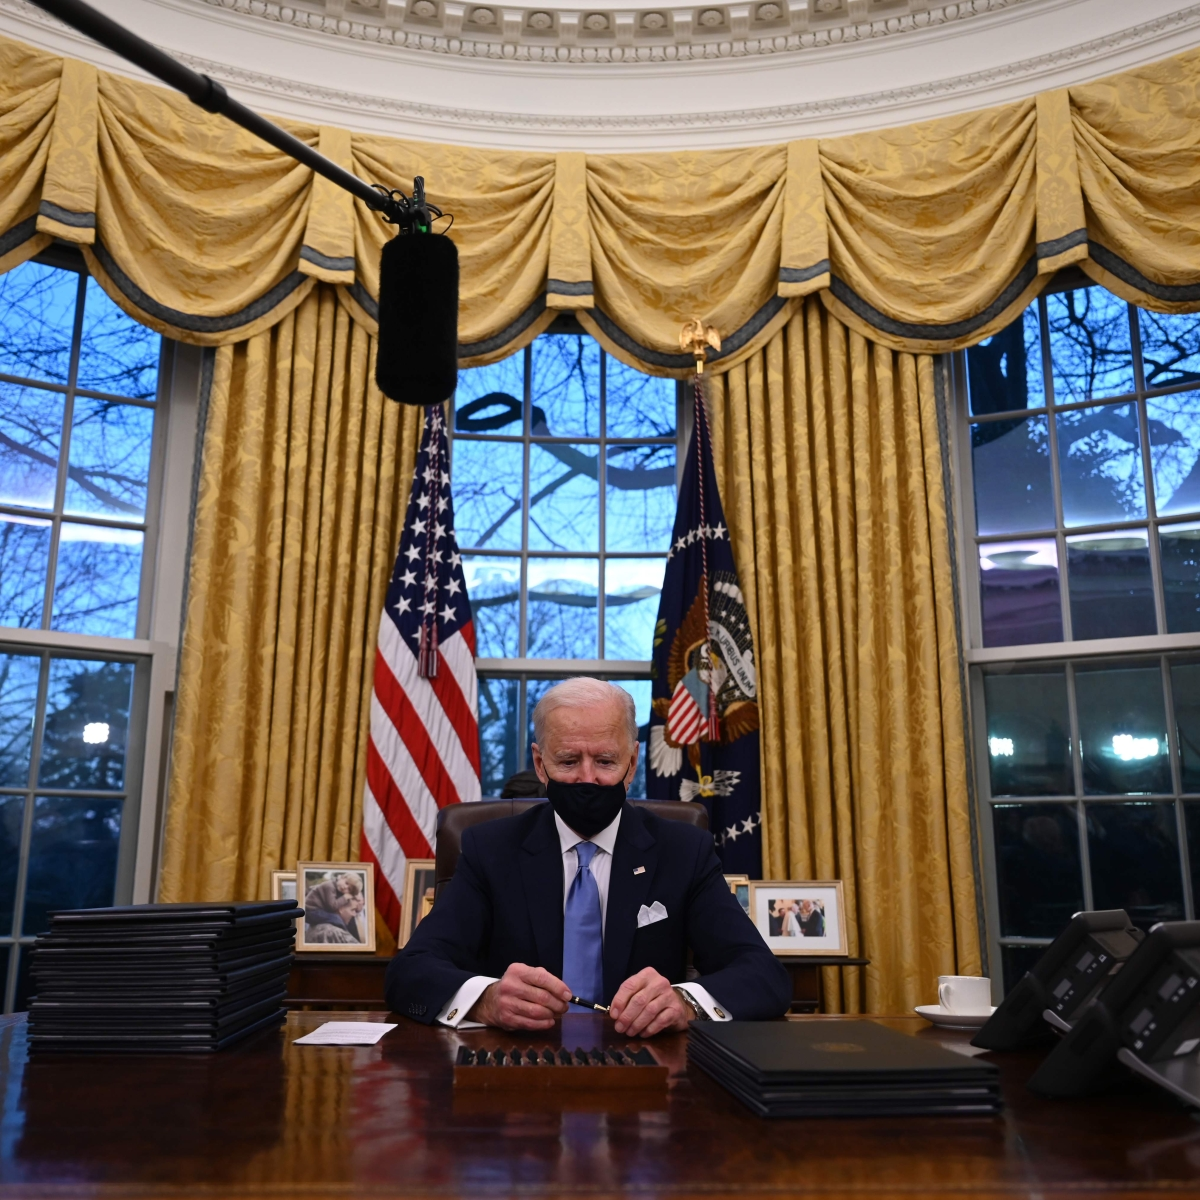 President Biden's first official call to foreign leader: Can you guess who it is?